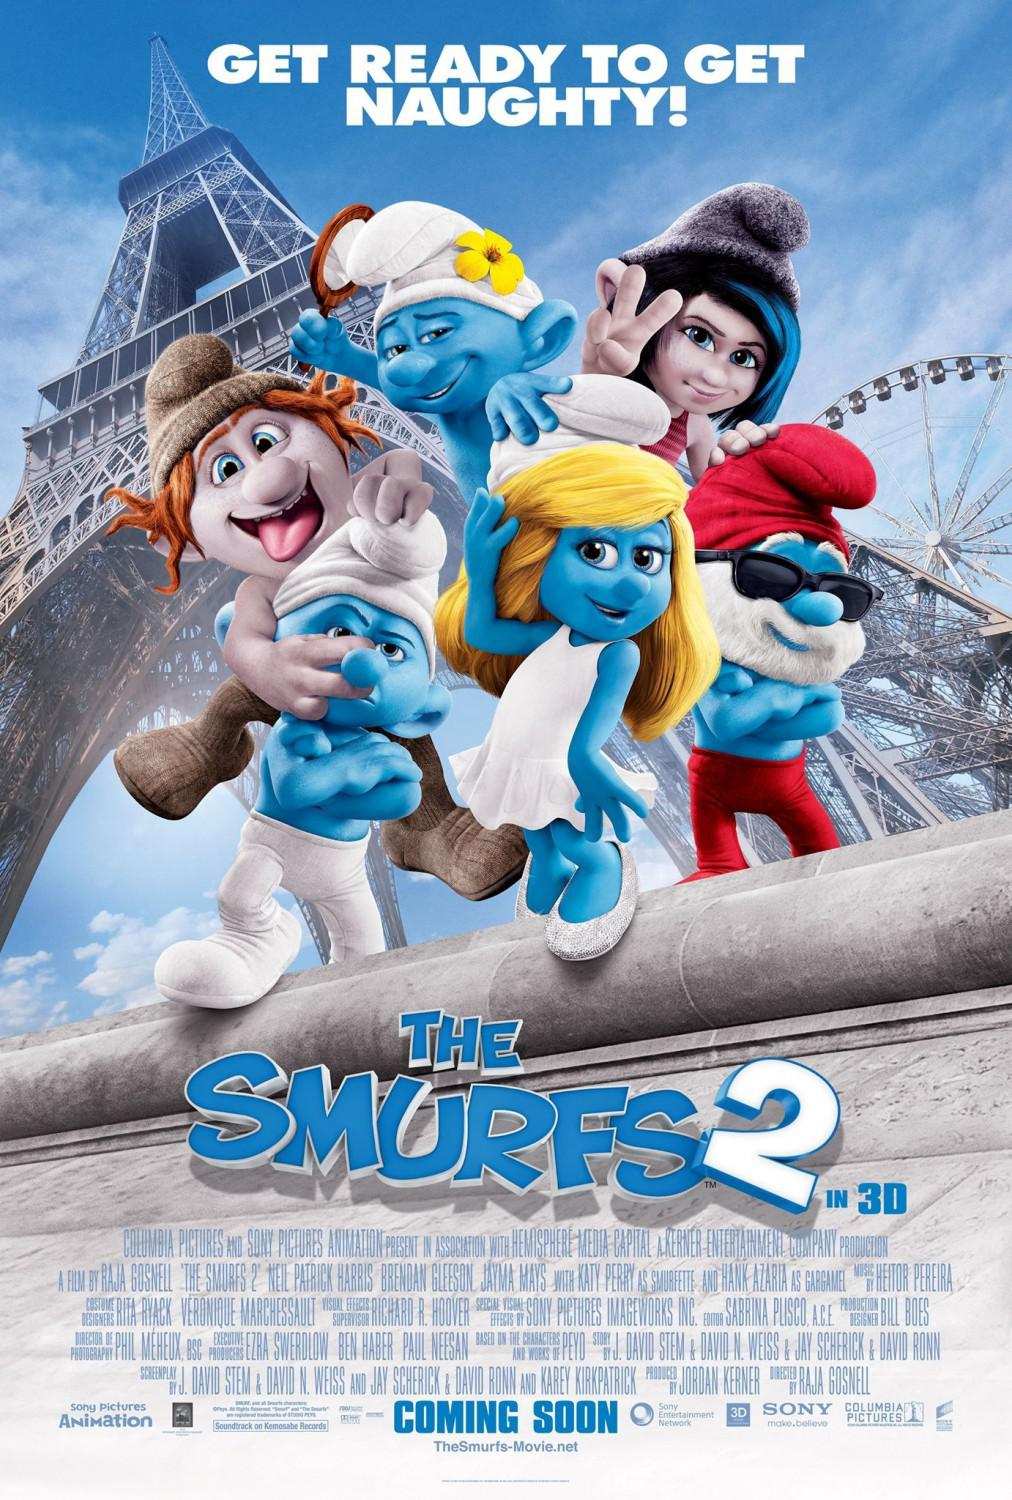 I Puffi 2 in 3D - Smurfs in 3D two - poster